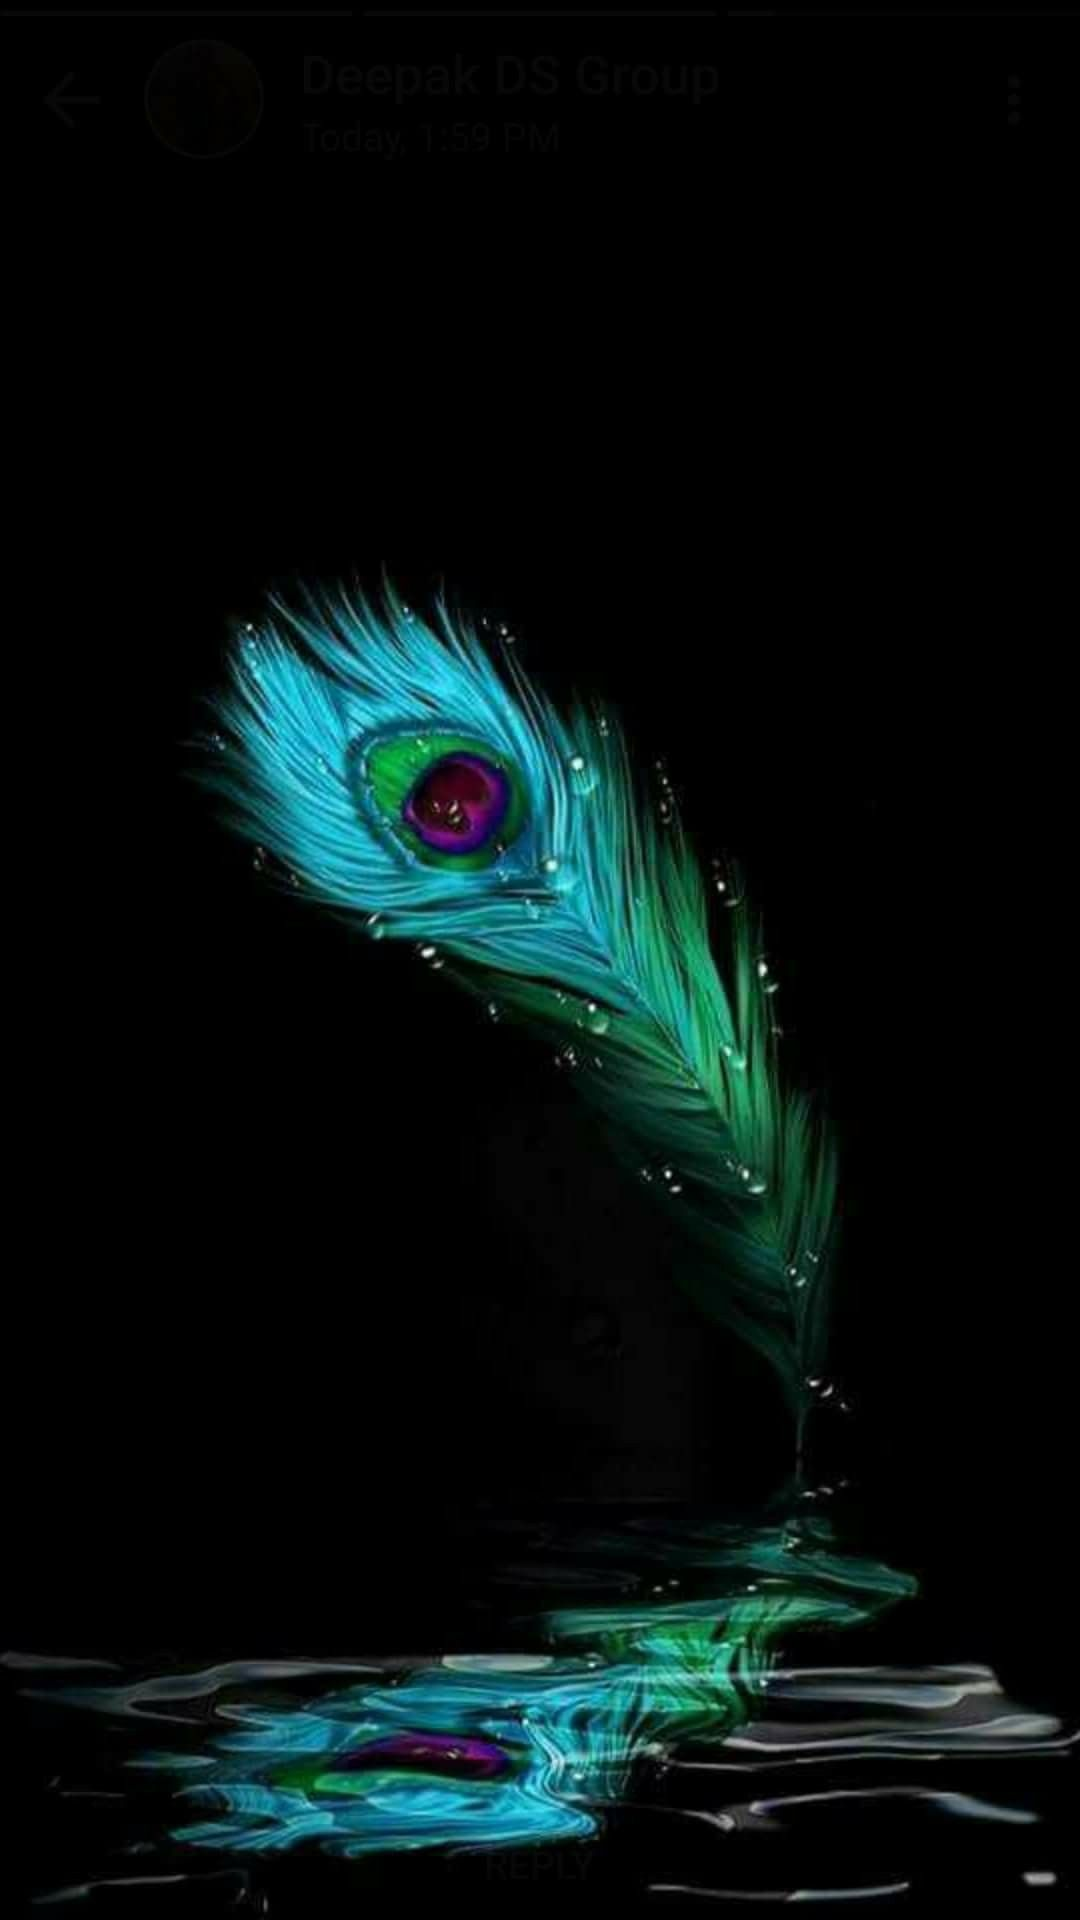 Peacock Feather Beauty Peacock Feather Divine Krishna Wallpaper Lord Krishna Wallpapers Krishna Flute